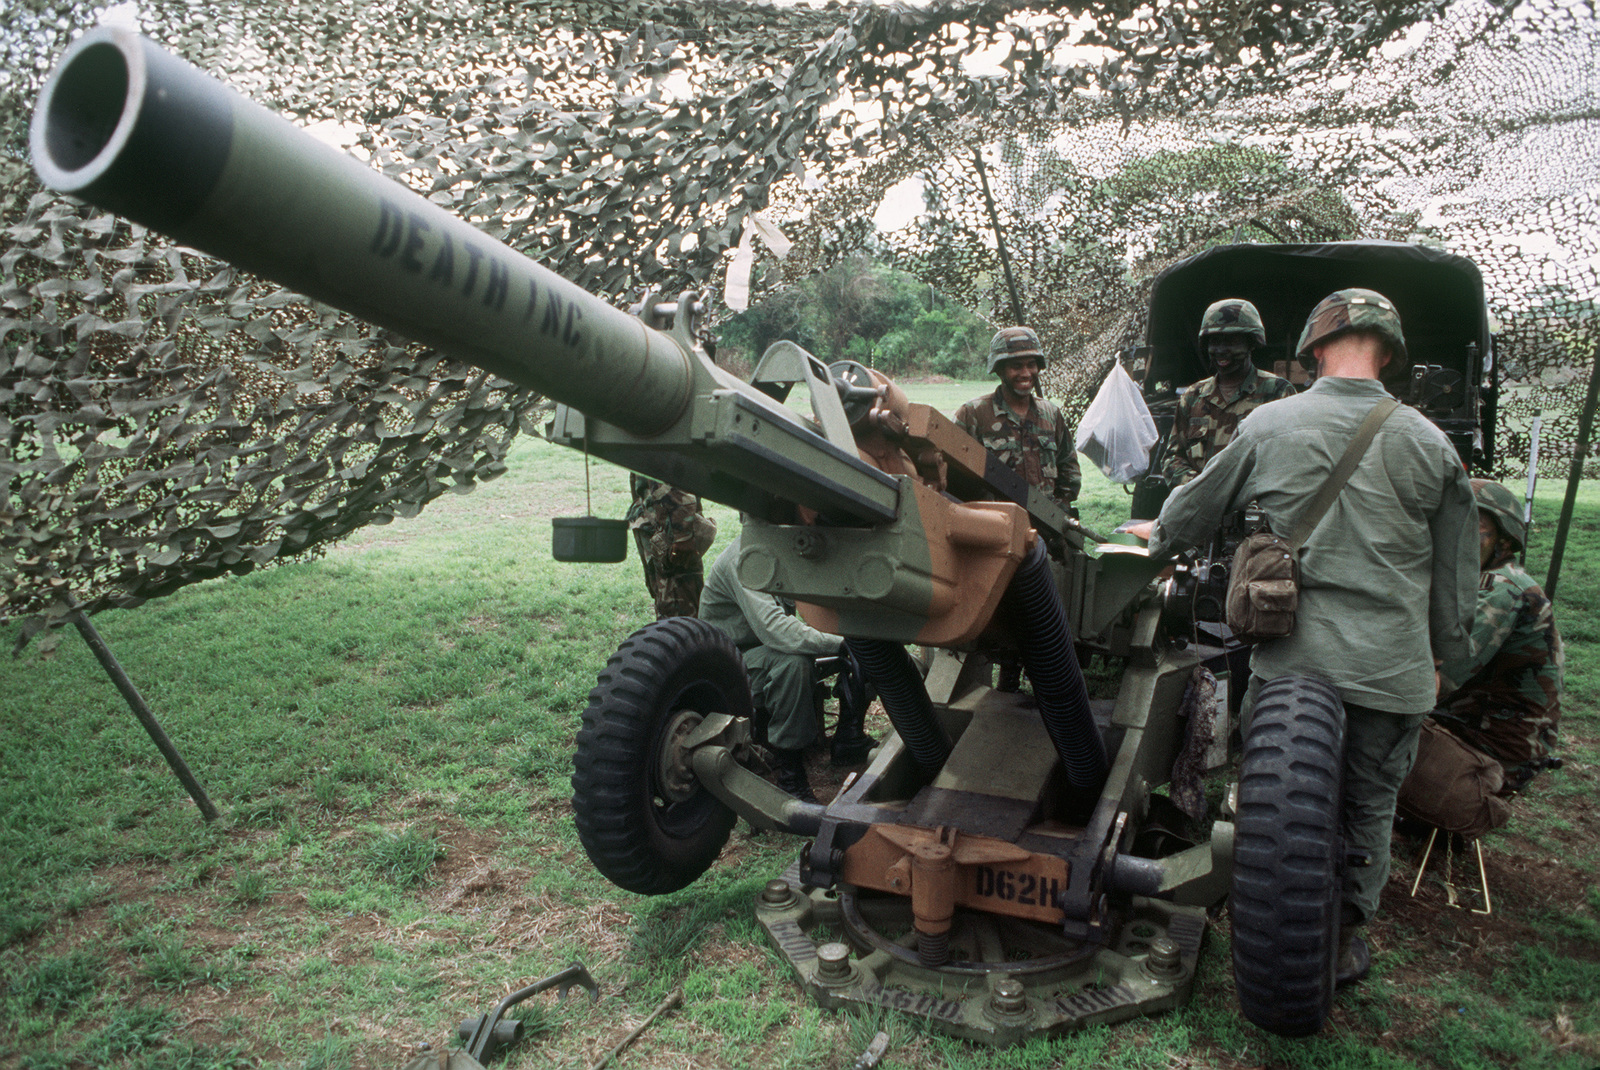 Members of the 4th Howitzer Section, D Battery, 320th Field